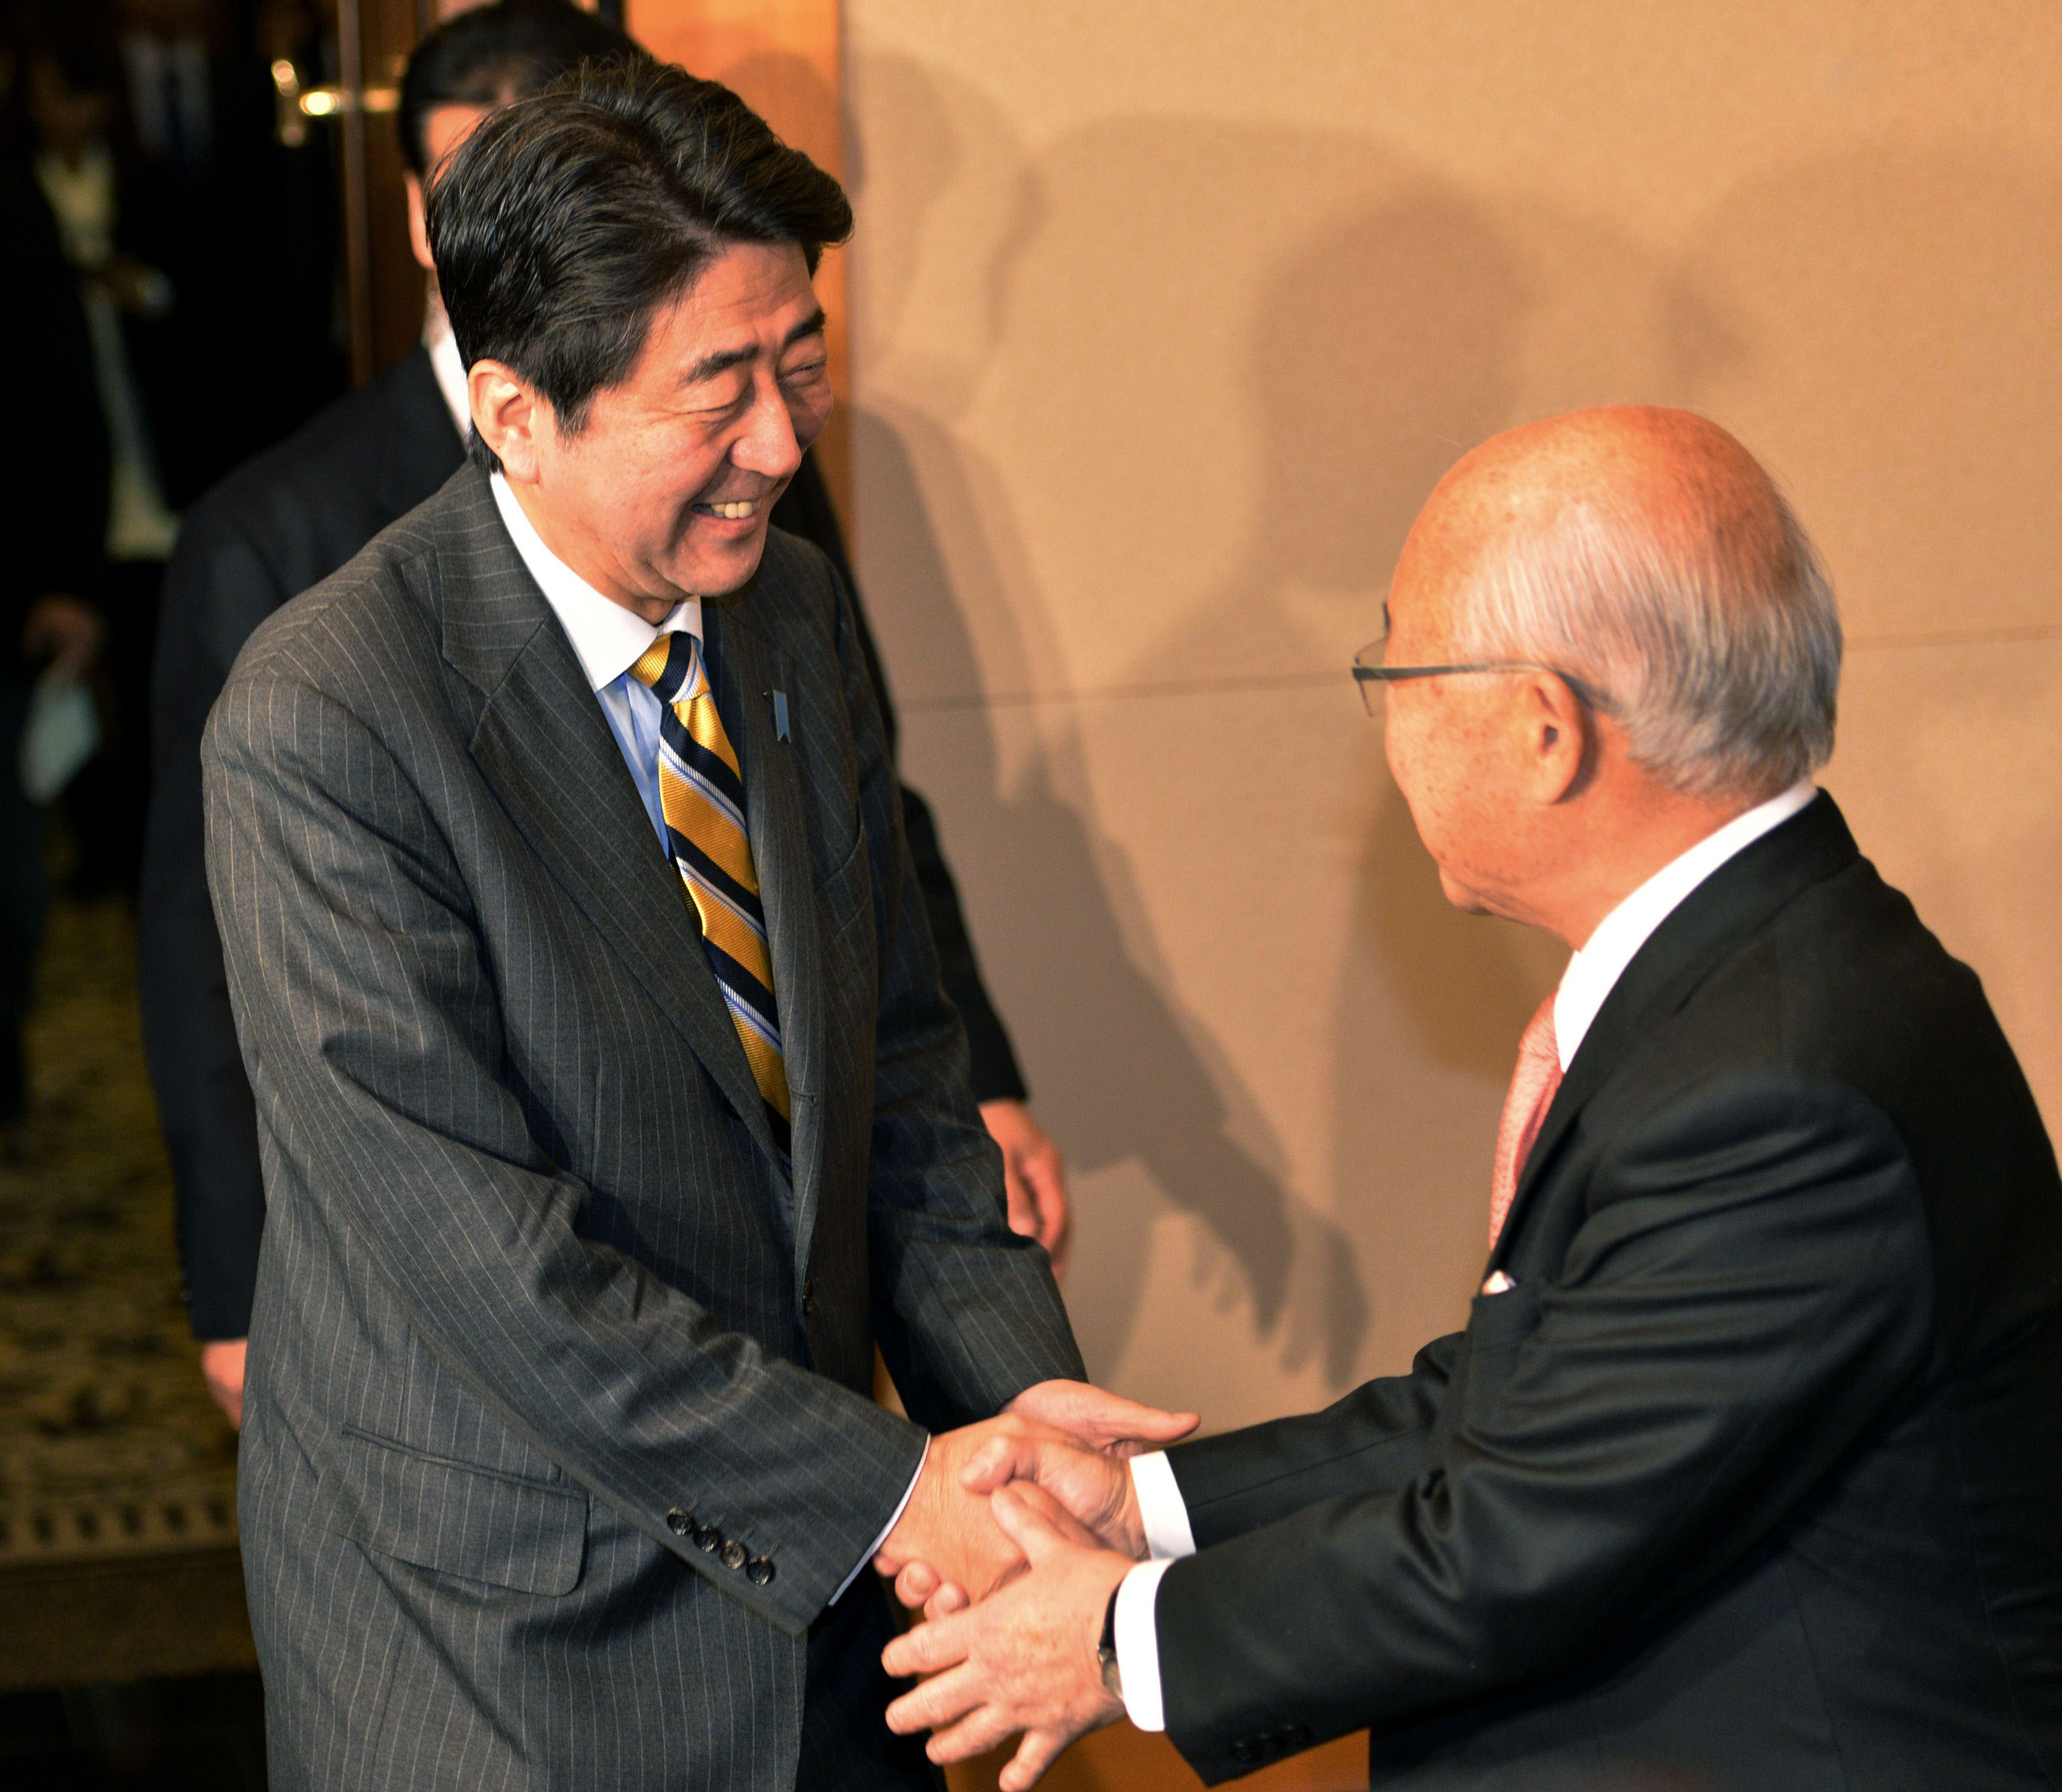 Back in play: Shinzo Abe, the next prime minister, is greeted by Fumiaki Watari, chairman of Keidanren's advisory board, upon his arrival for talks with the nation's top business leaders Tuesday in Tokyo. | AFP-JIJI